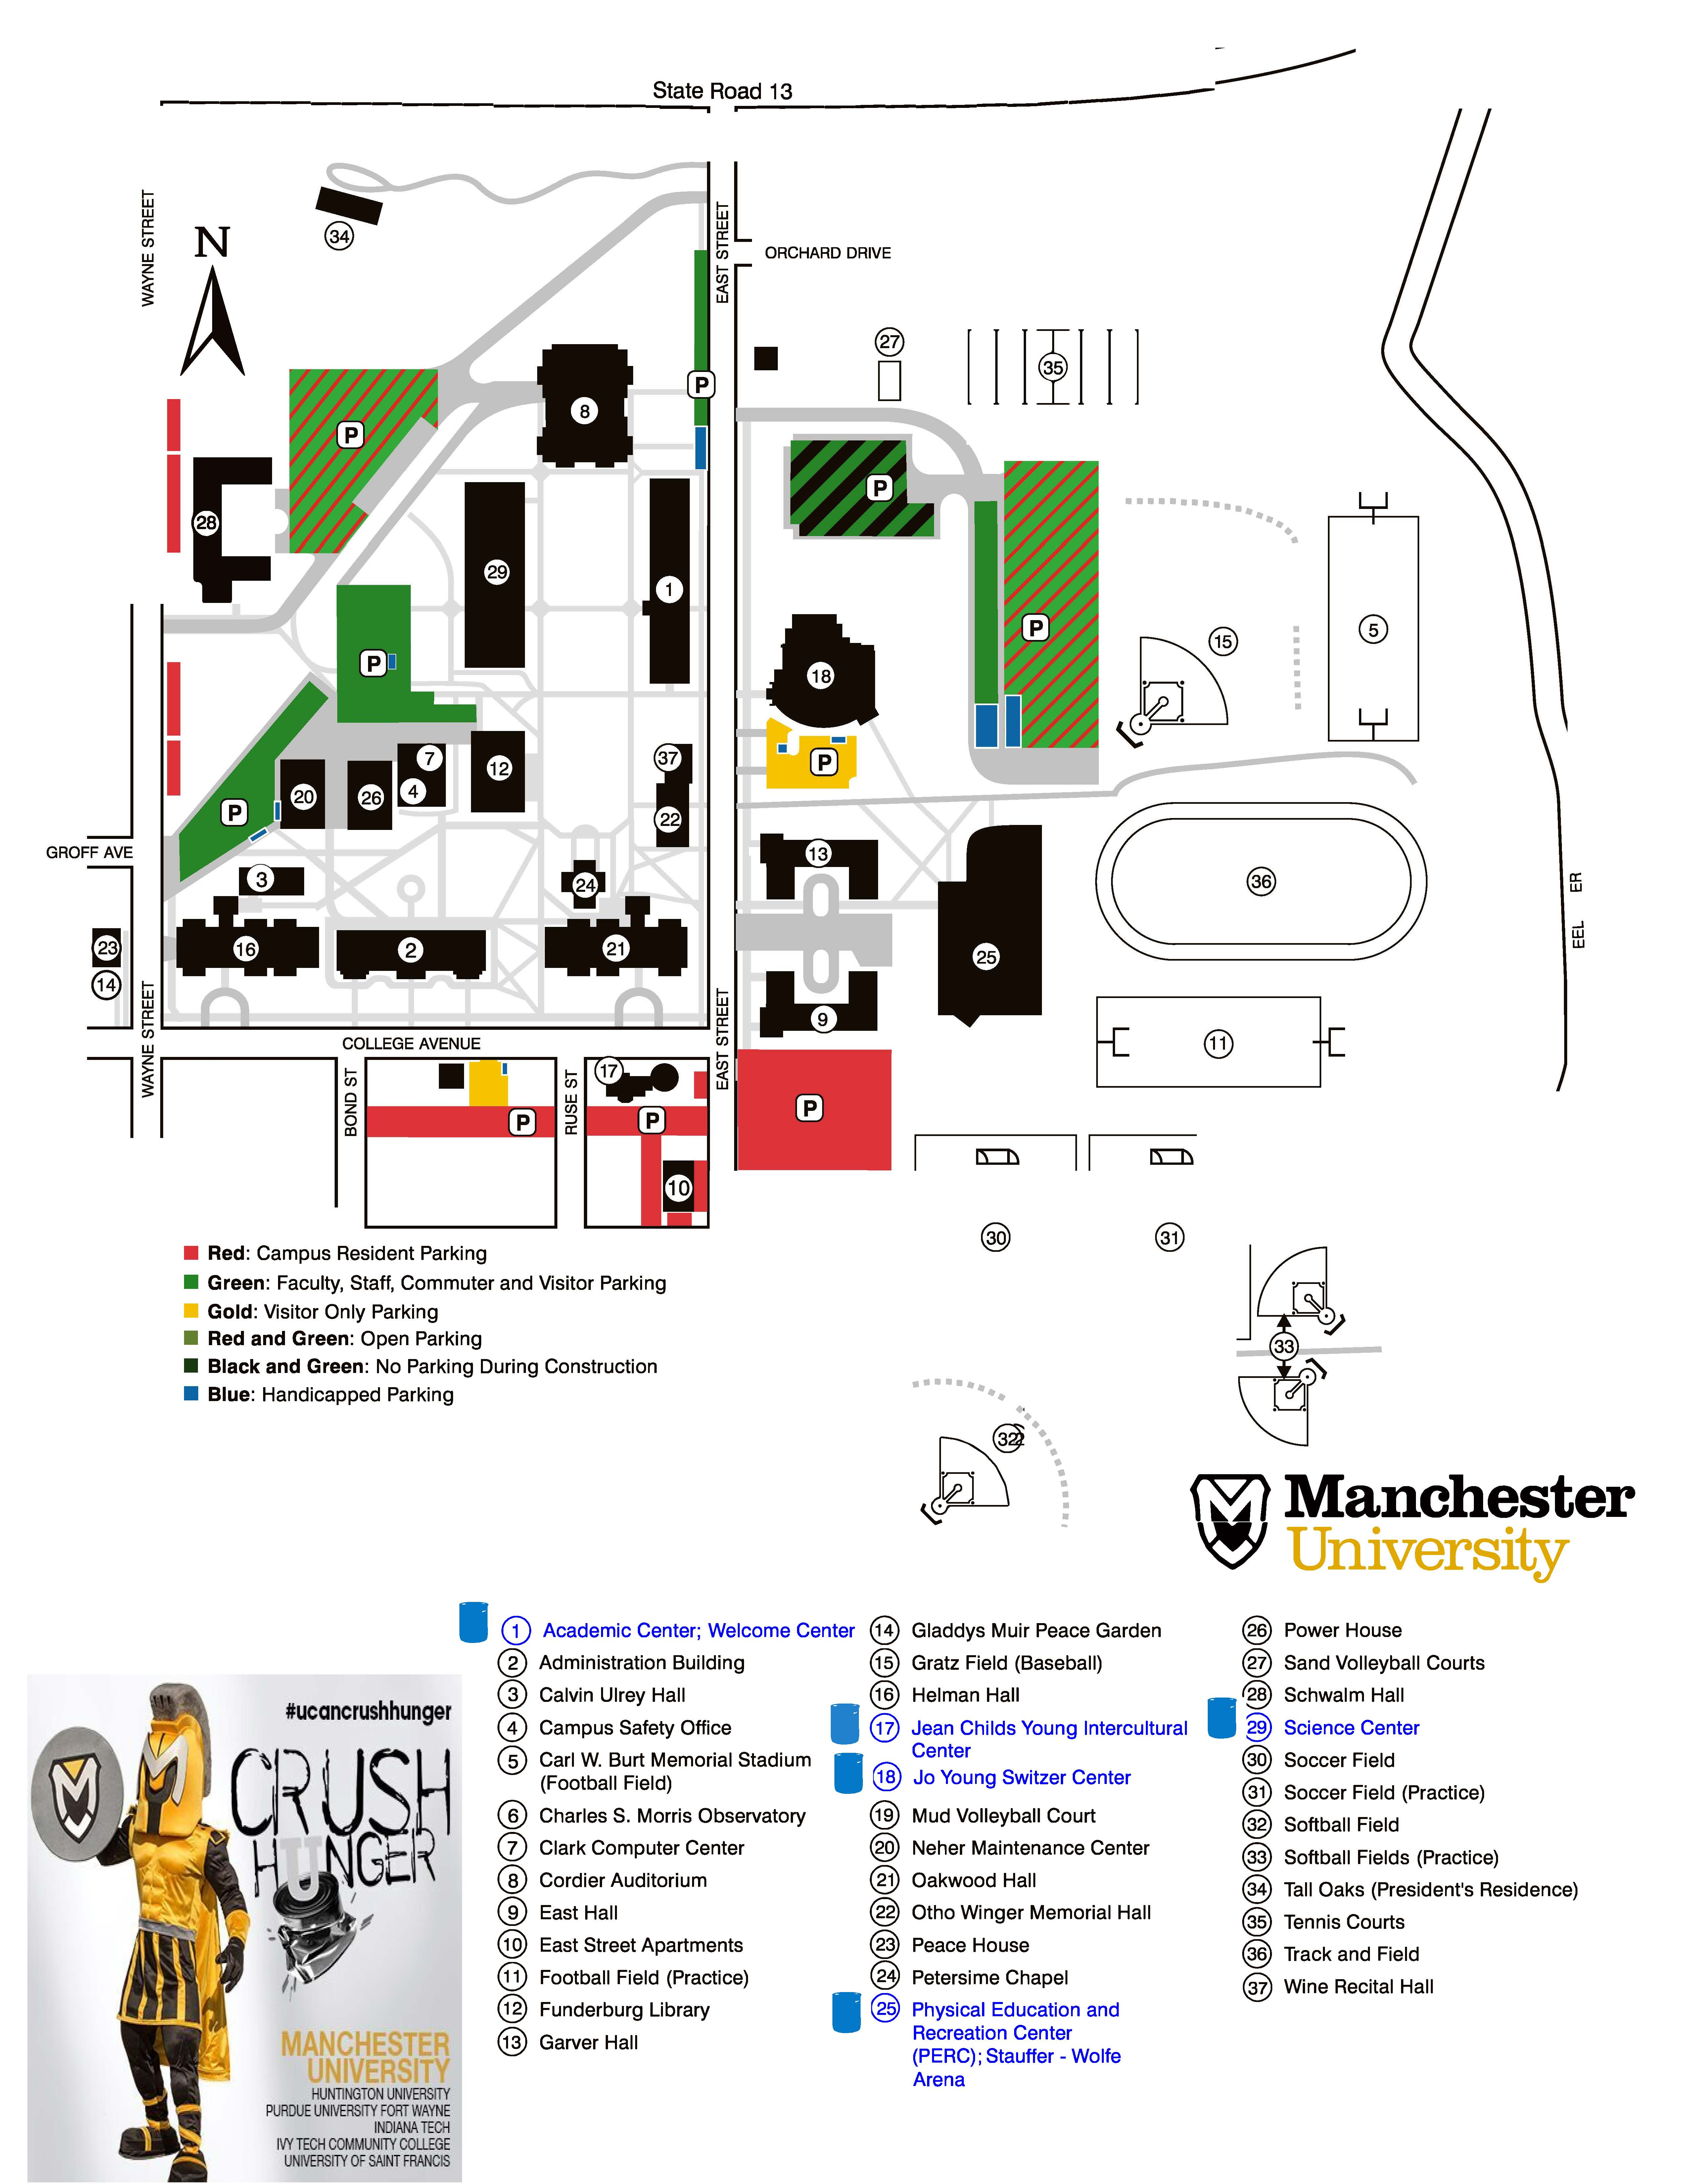 Center for Service - Polar Plunge | Manchester University on indiana university dorm map, indiana university indiana map, indiana university collins hall campus map, indiana university dormitory map, indiana university union street map,